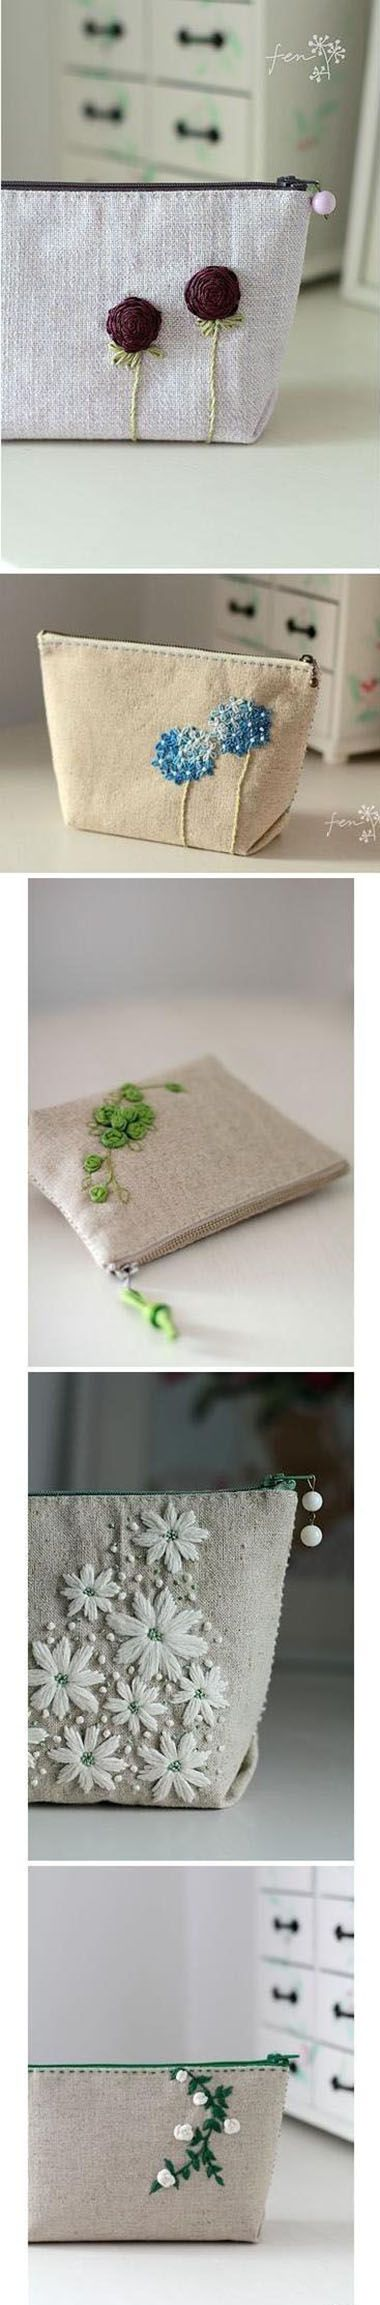 Great Bag Ideas | DIY Crafts | Projects to Try | Pinterest ...